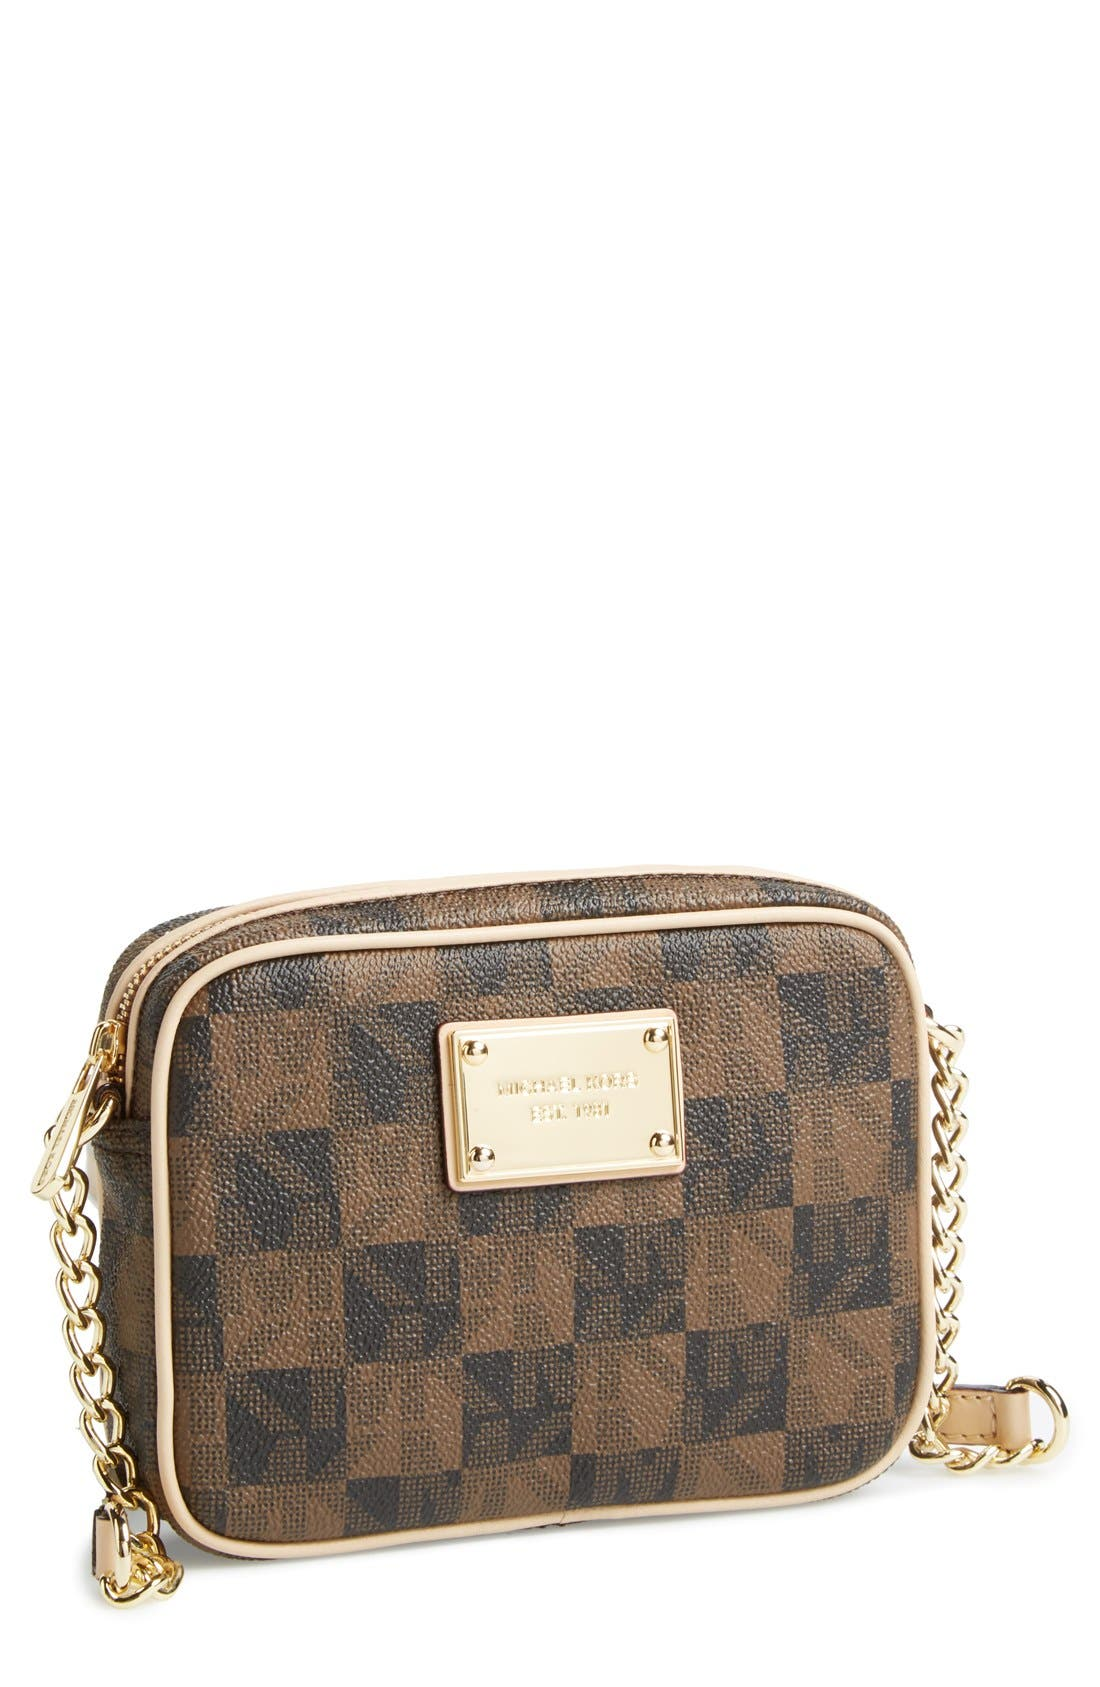 Alternate Image 1 Selected - MICHAEL Michael Kors 'Small Jet Set Signature' Crossbody